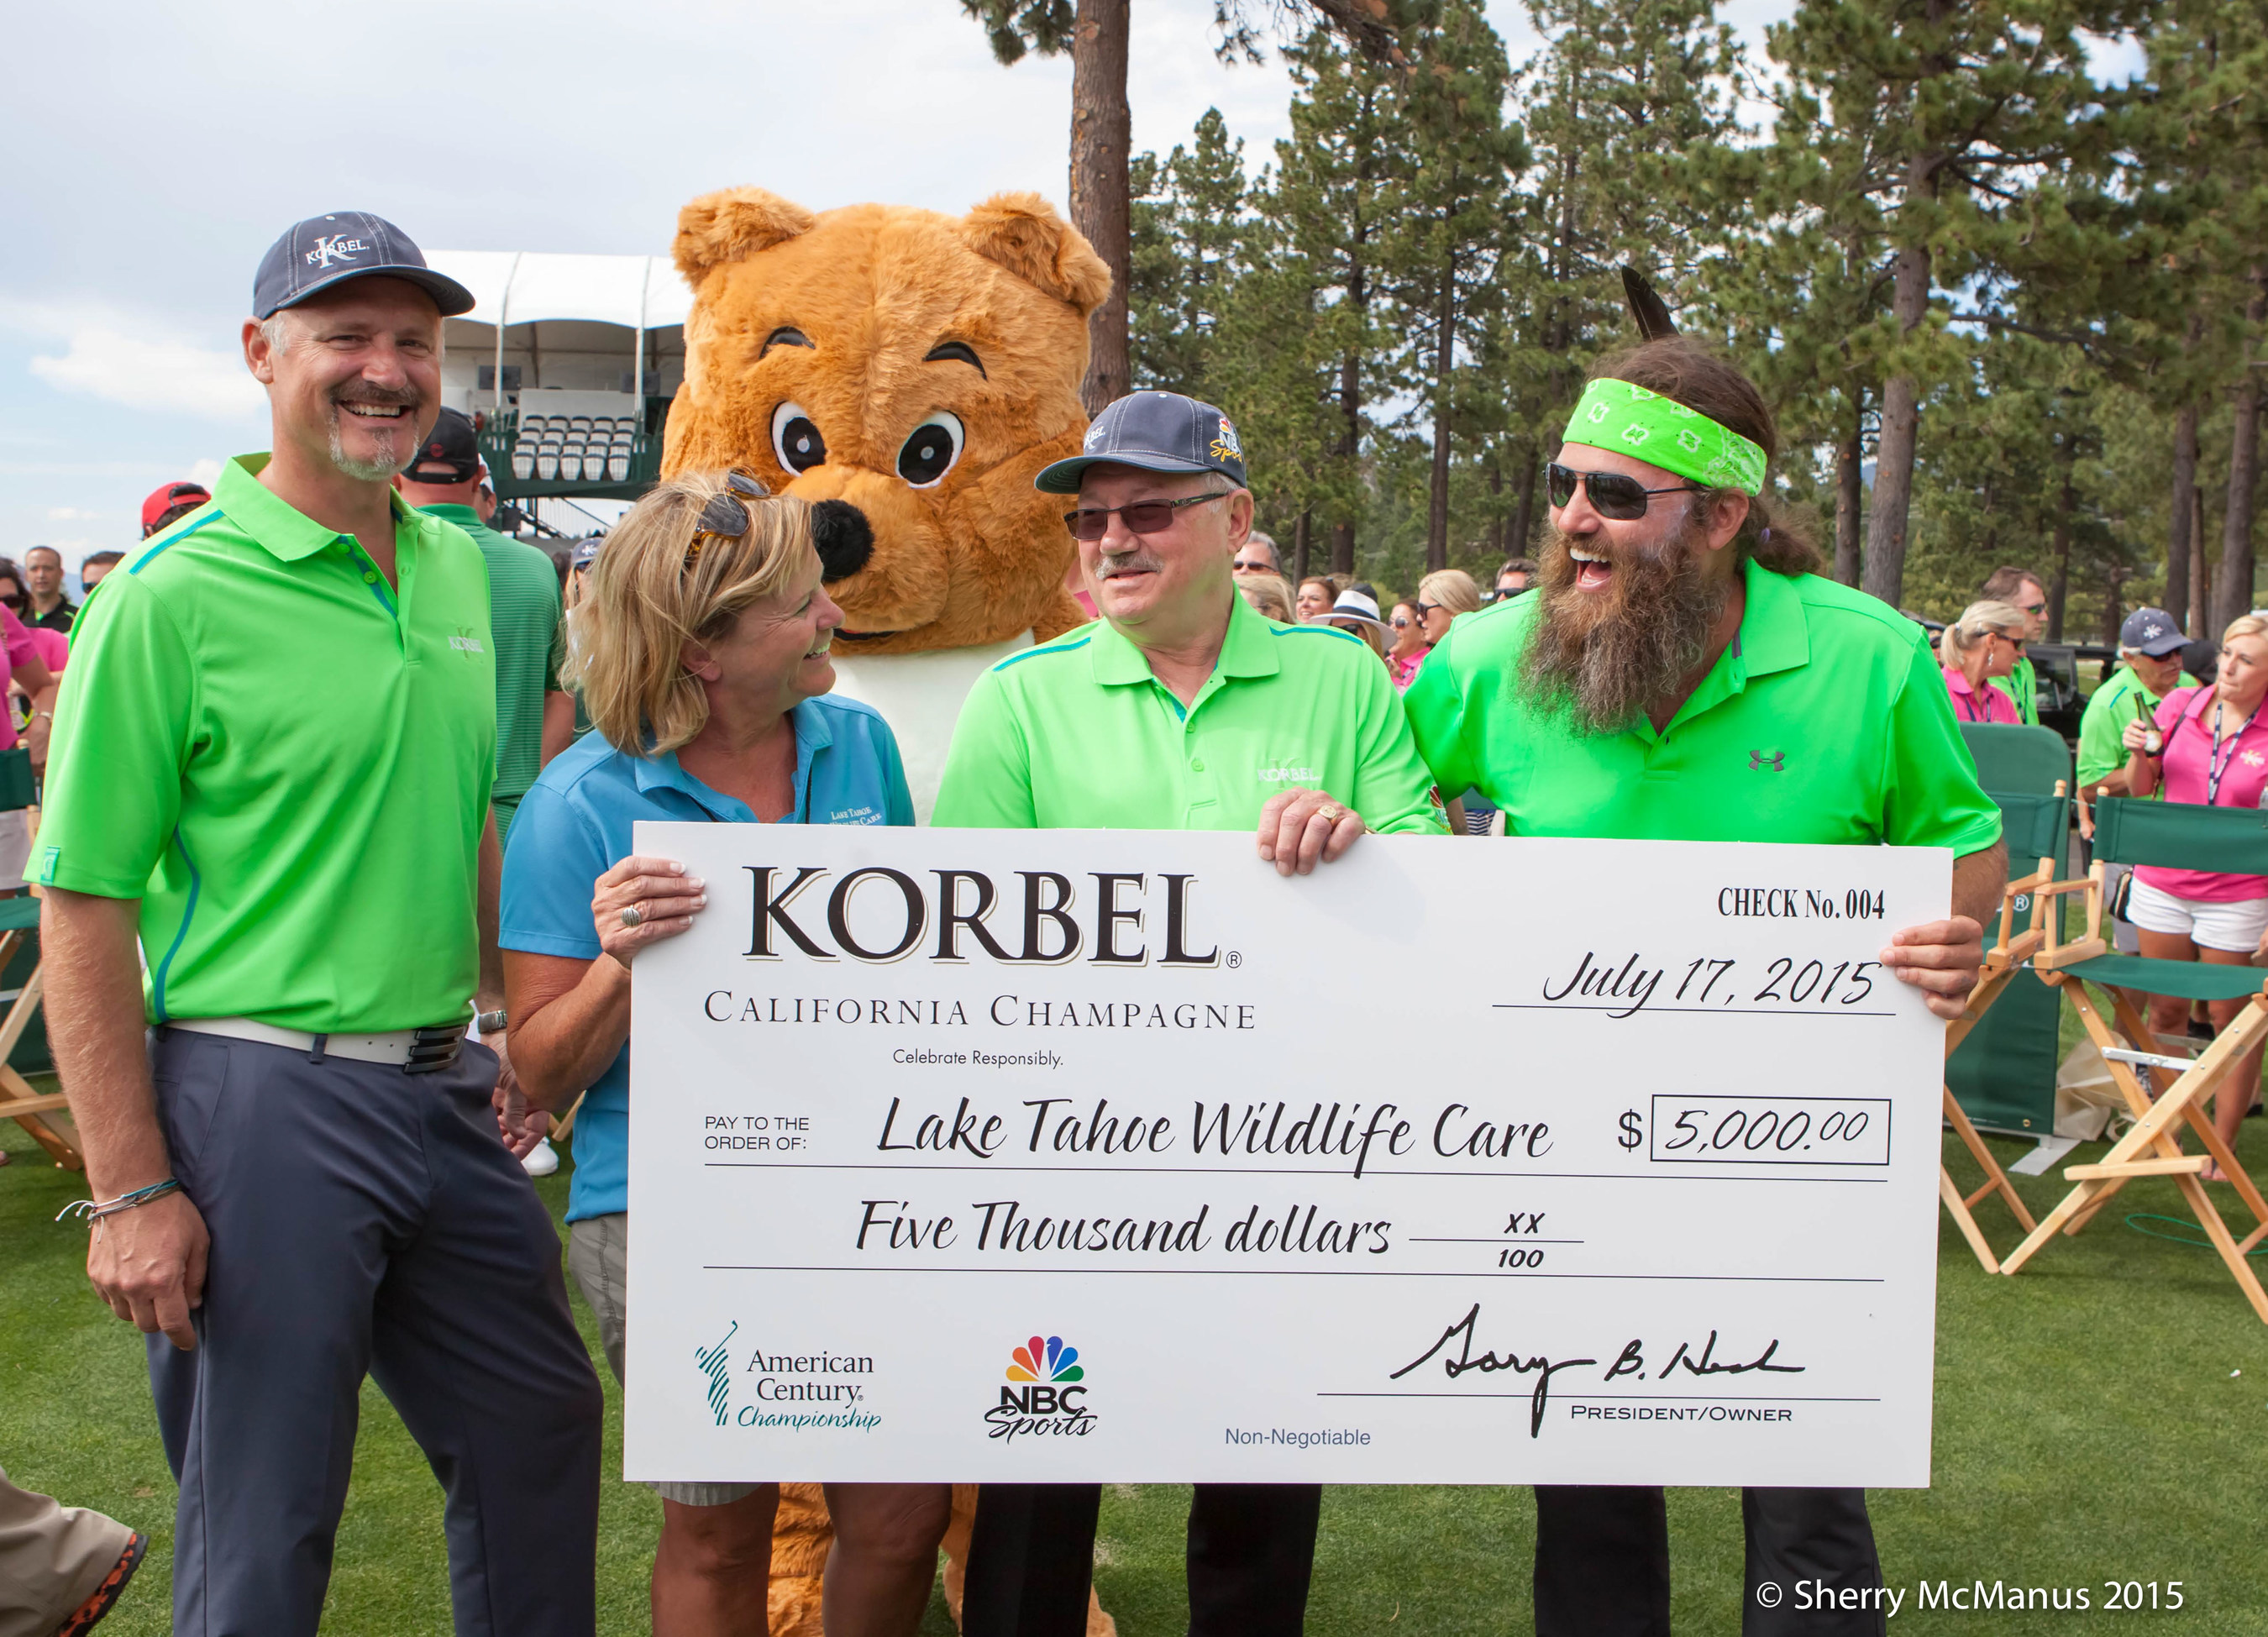 On July 17th 13 of the world's most legendary athletes and entertainers competed in Lake Tahoe for the Korbel Closest-to-the-Pin Challenge as part of the American Century Celebrity Golf Championship, currently being played at Edgewood Golf Course. Duck Dynasty Star Willie Robertson took home the title, winning a $5,000 donation from the  for the Tahoe Wildlife Care from the Korbel Toast Life Foundation. Pictured L-R: Todd Kennedy, Korbel; Sue Novasel, District Five Supervisor; Gary Heck, Korbel; Willie Robertson, Duck Dynasty